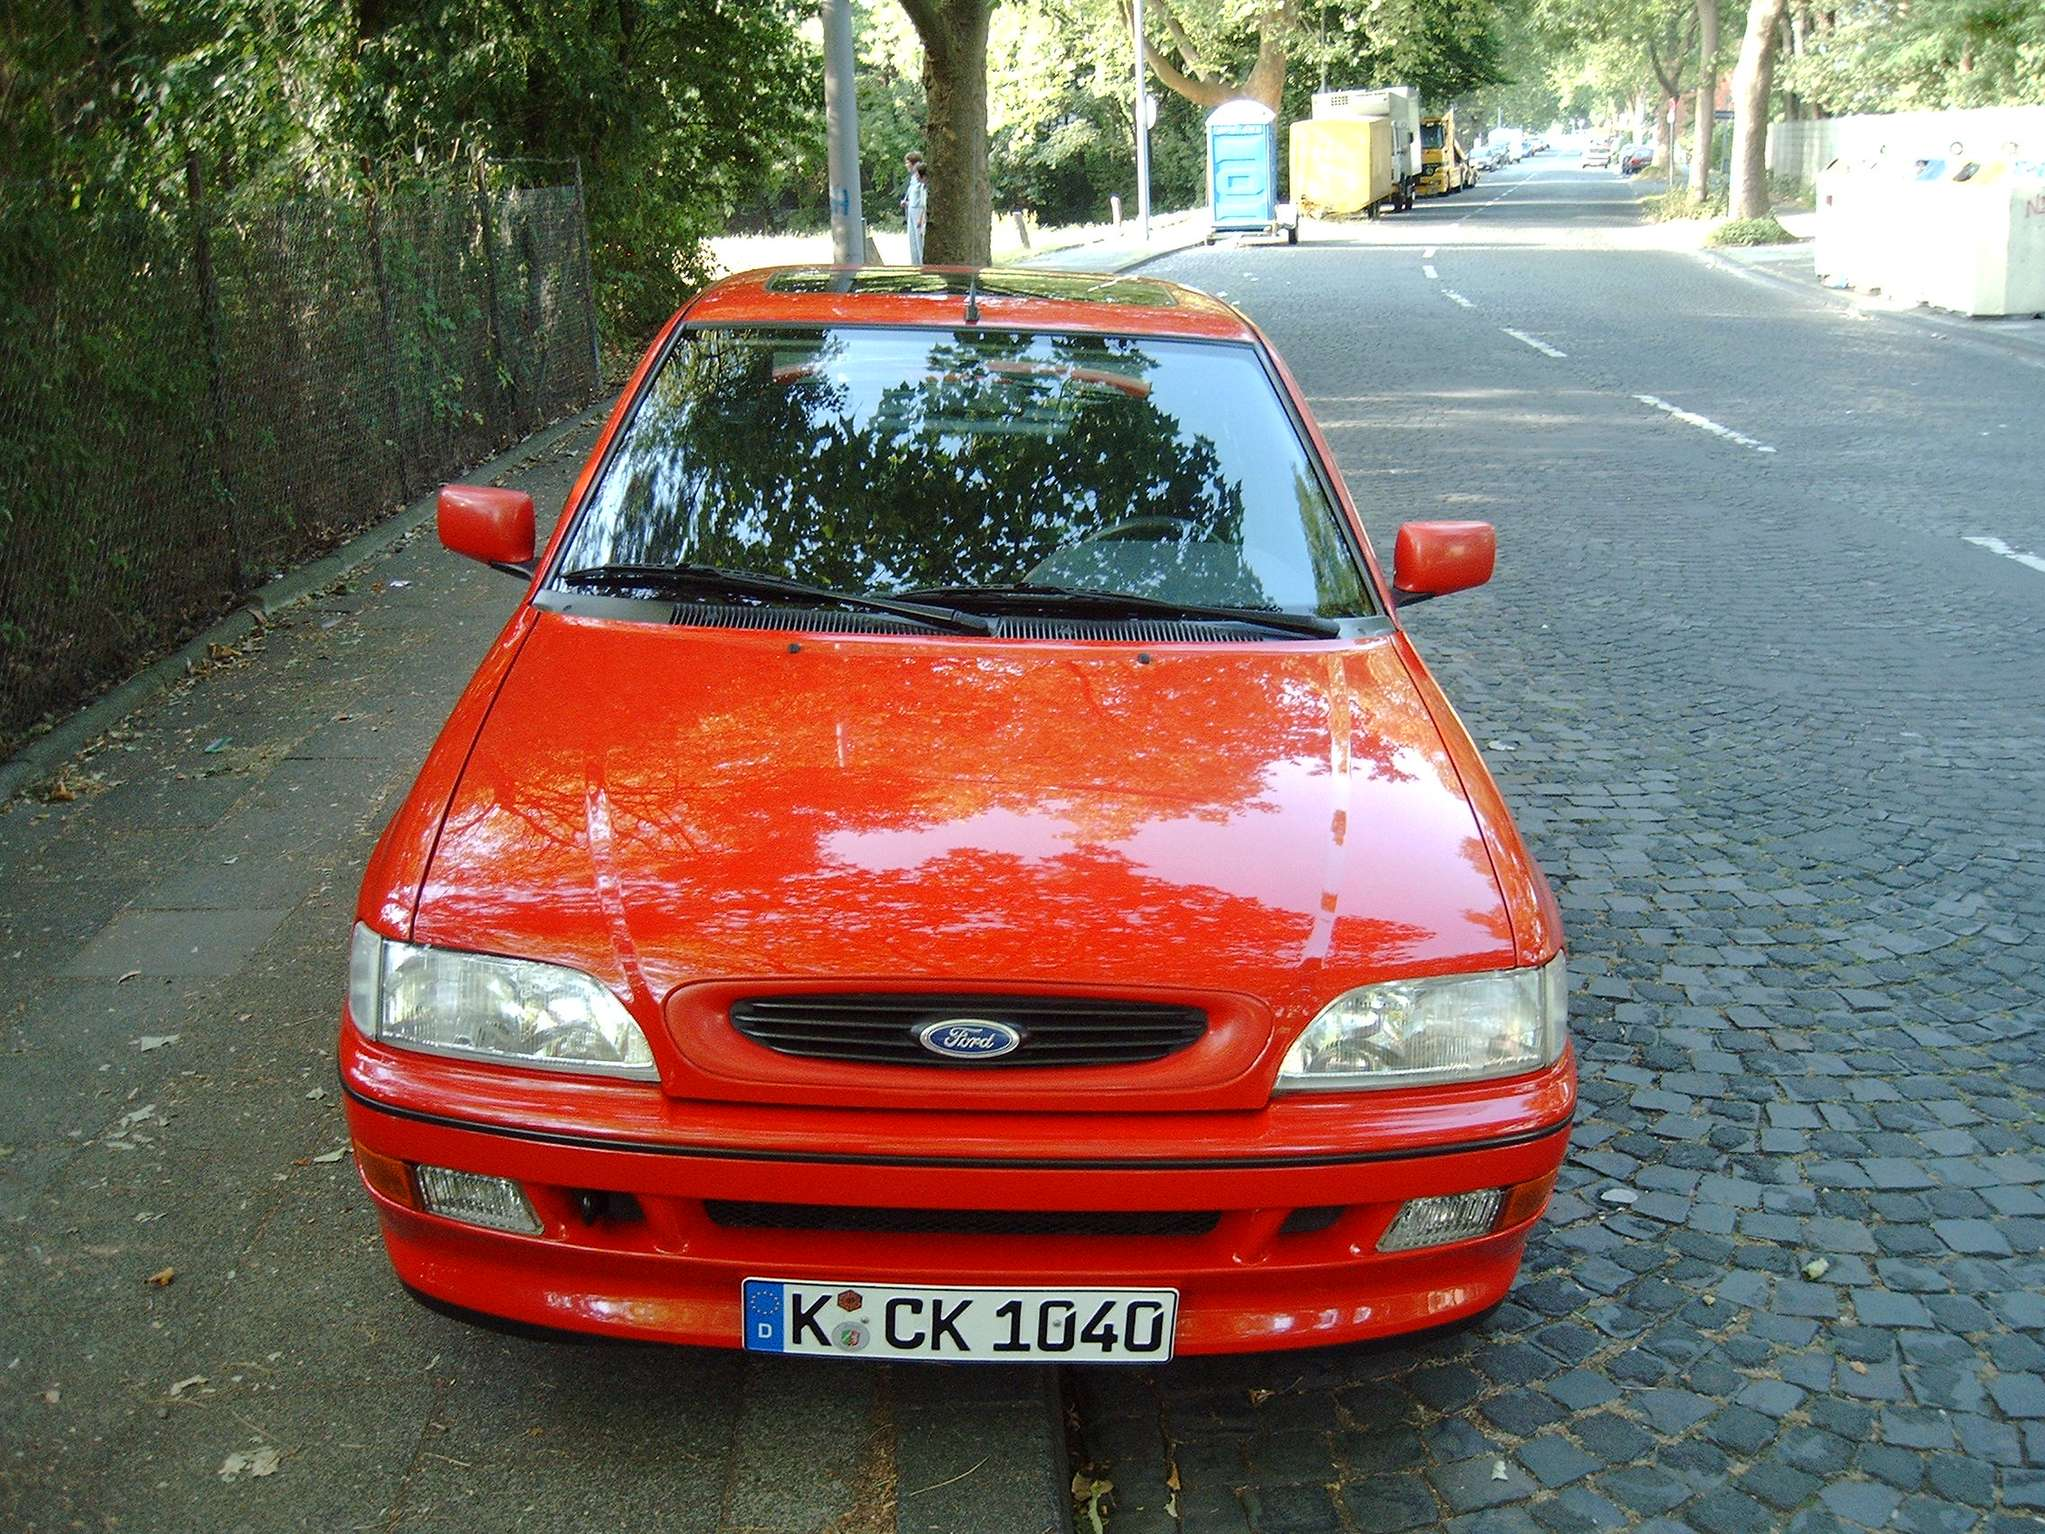 Ford Escort Xr3i #8556208